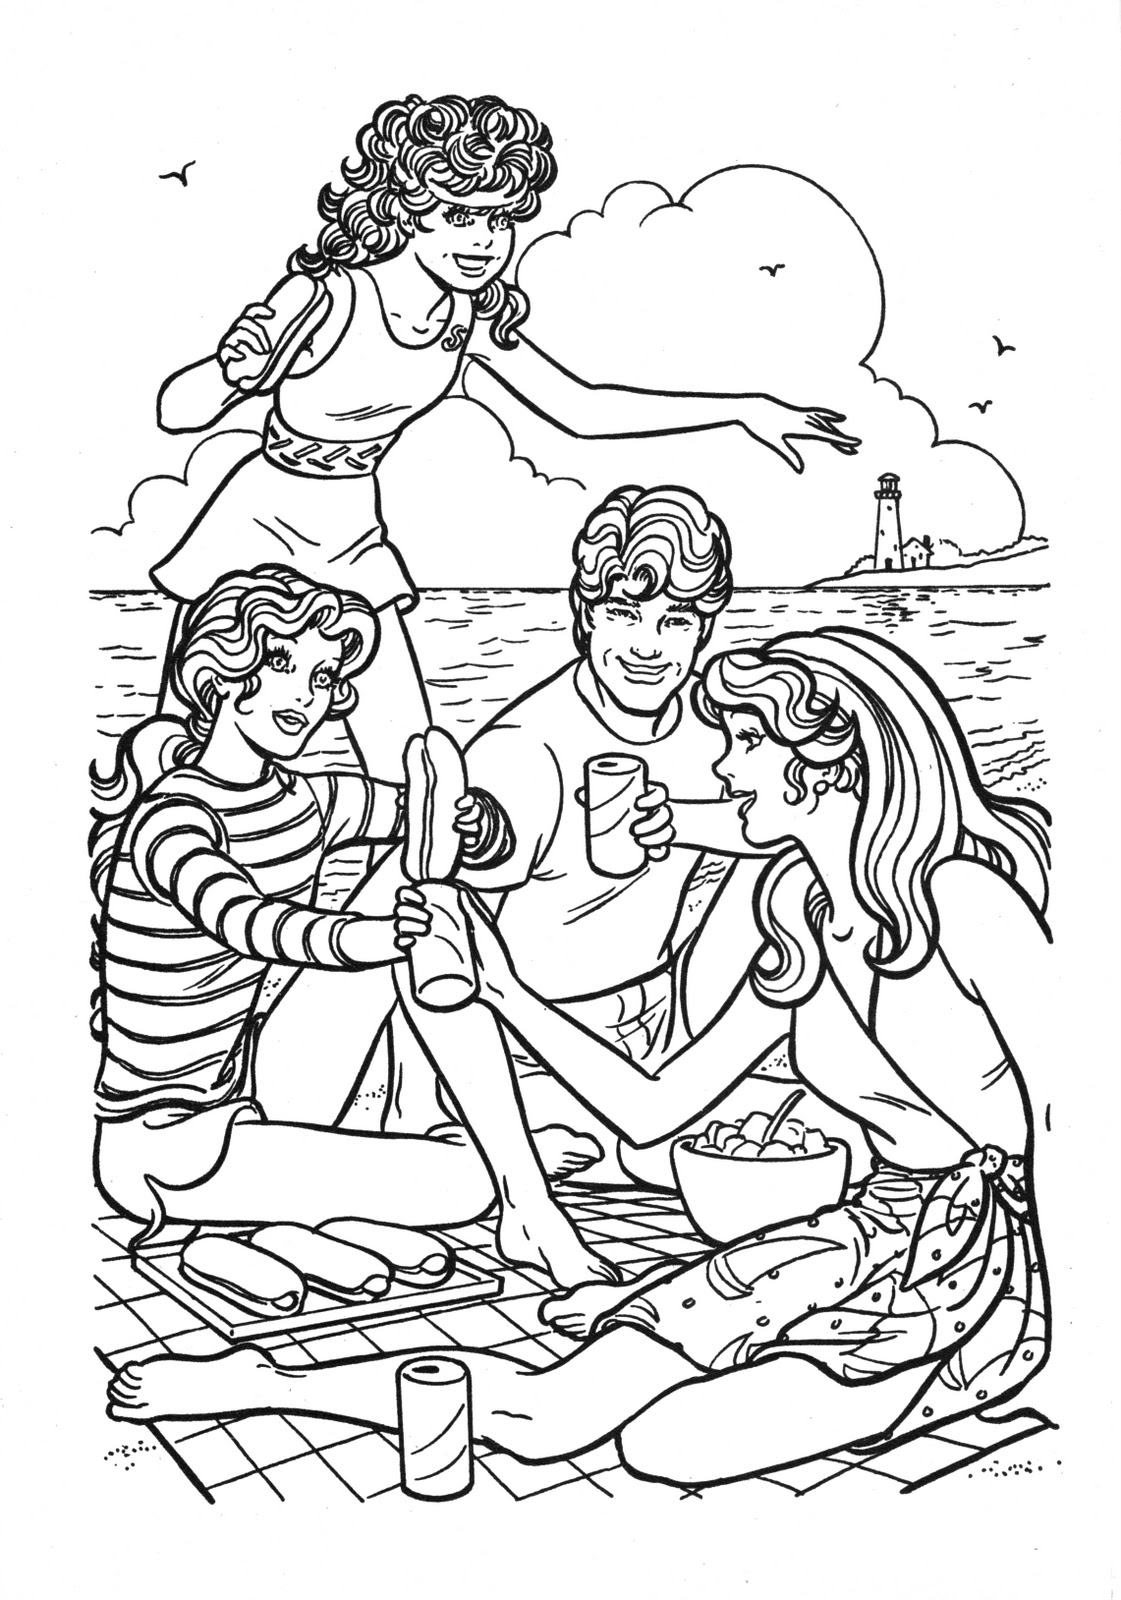 barbie and ken coloring sheets barbie and ken coloring pages getcoloringpagescom sheets ken and coloring barbie